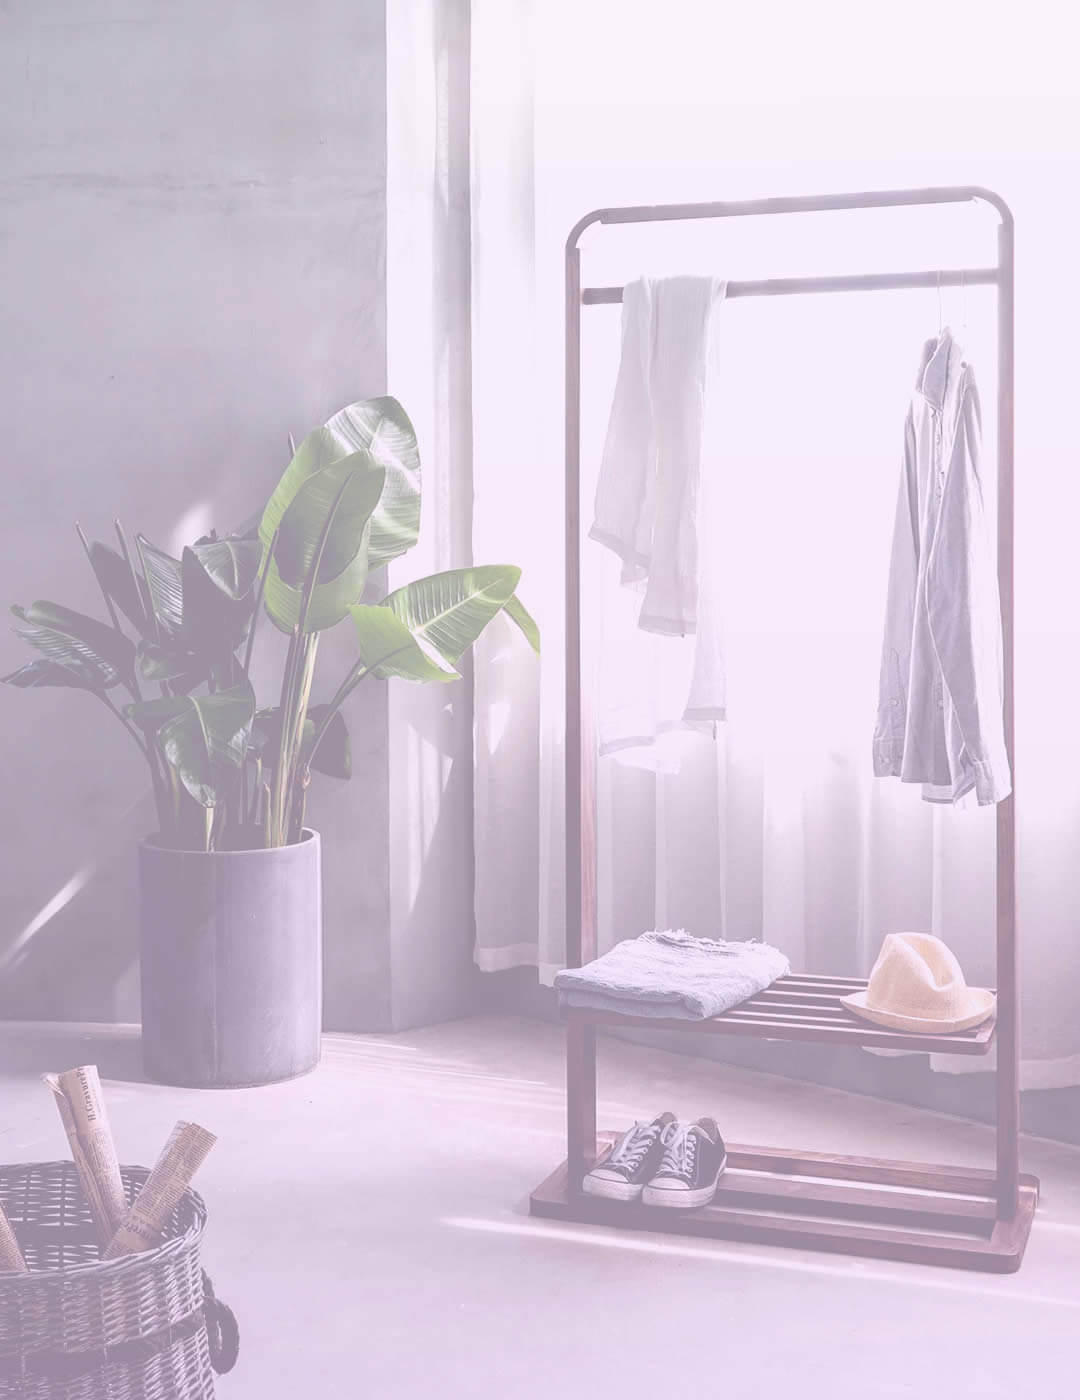 Green plant and a clothes rack for home organization